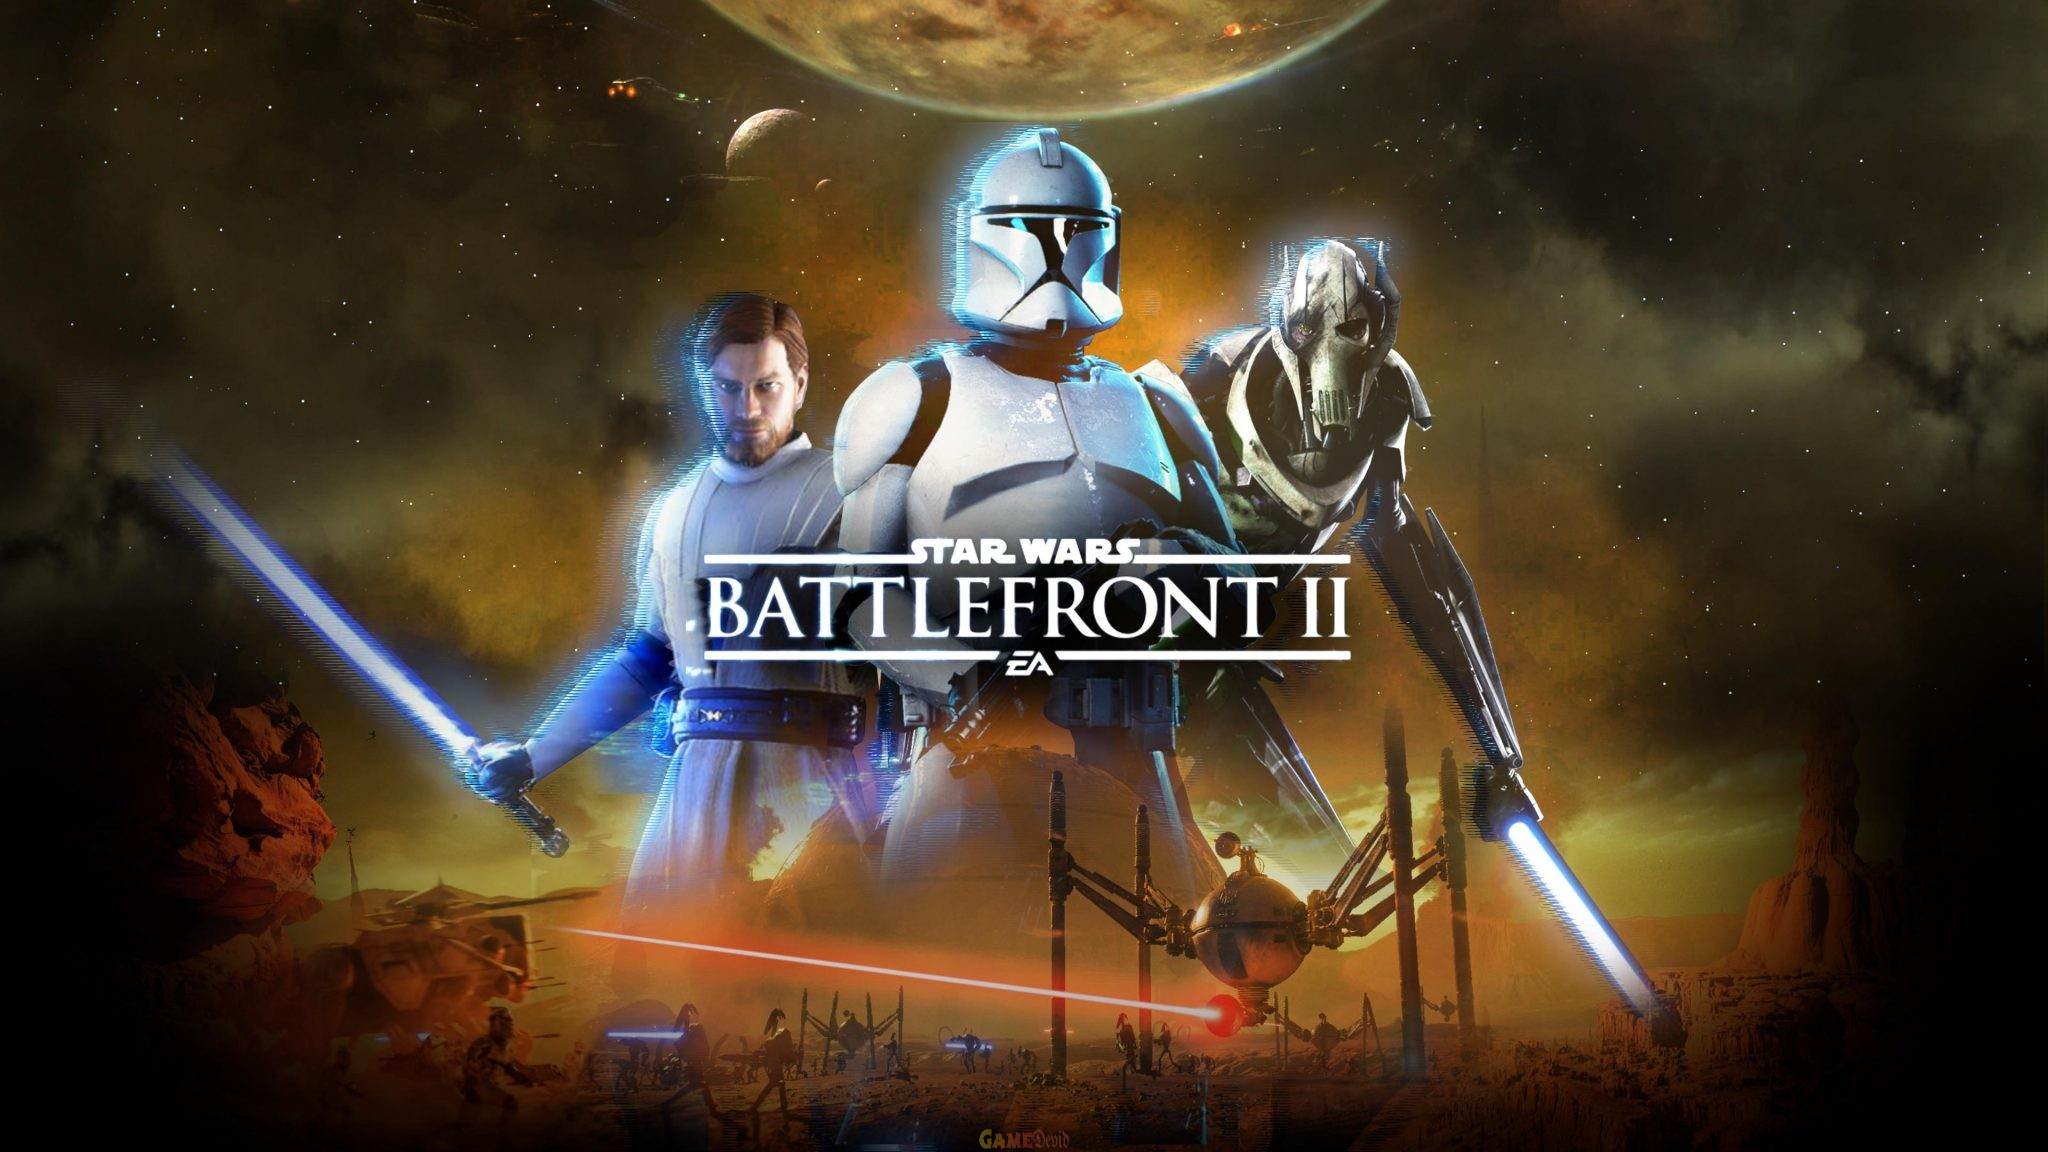 Star Wars Battlefront 3 Xbox One Complete Game Free Download